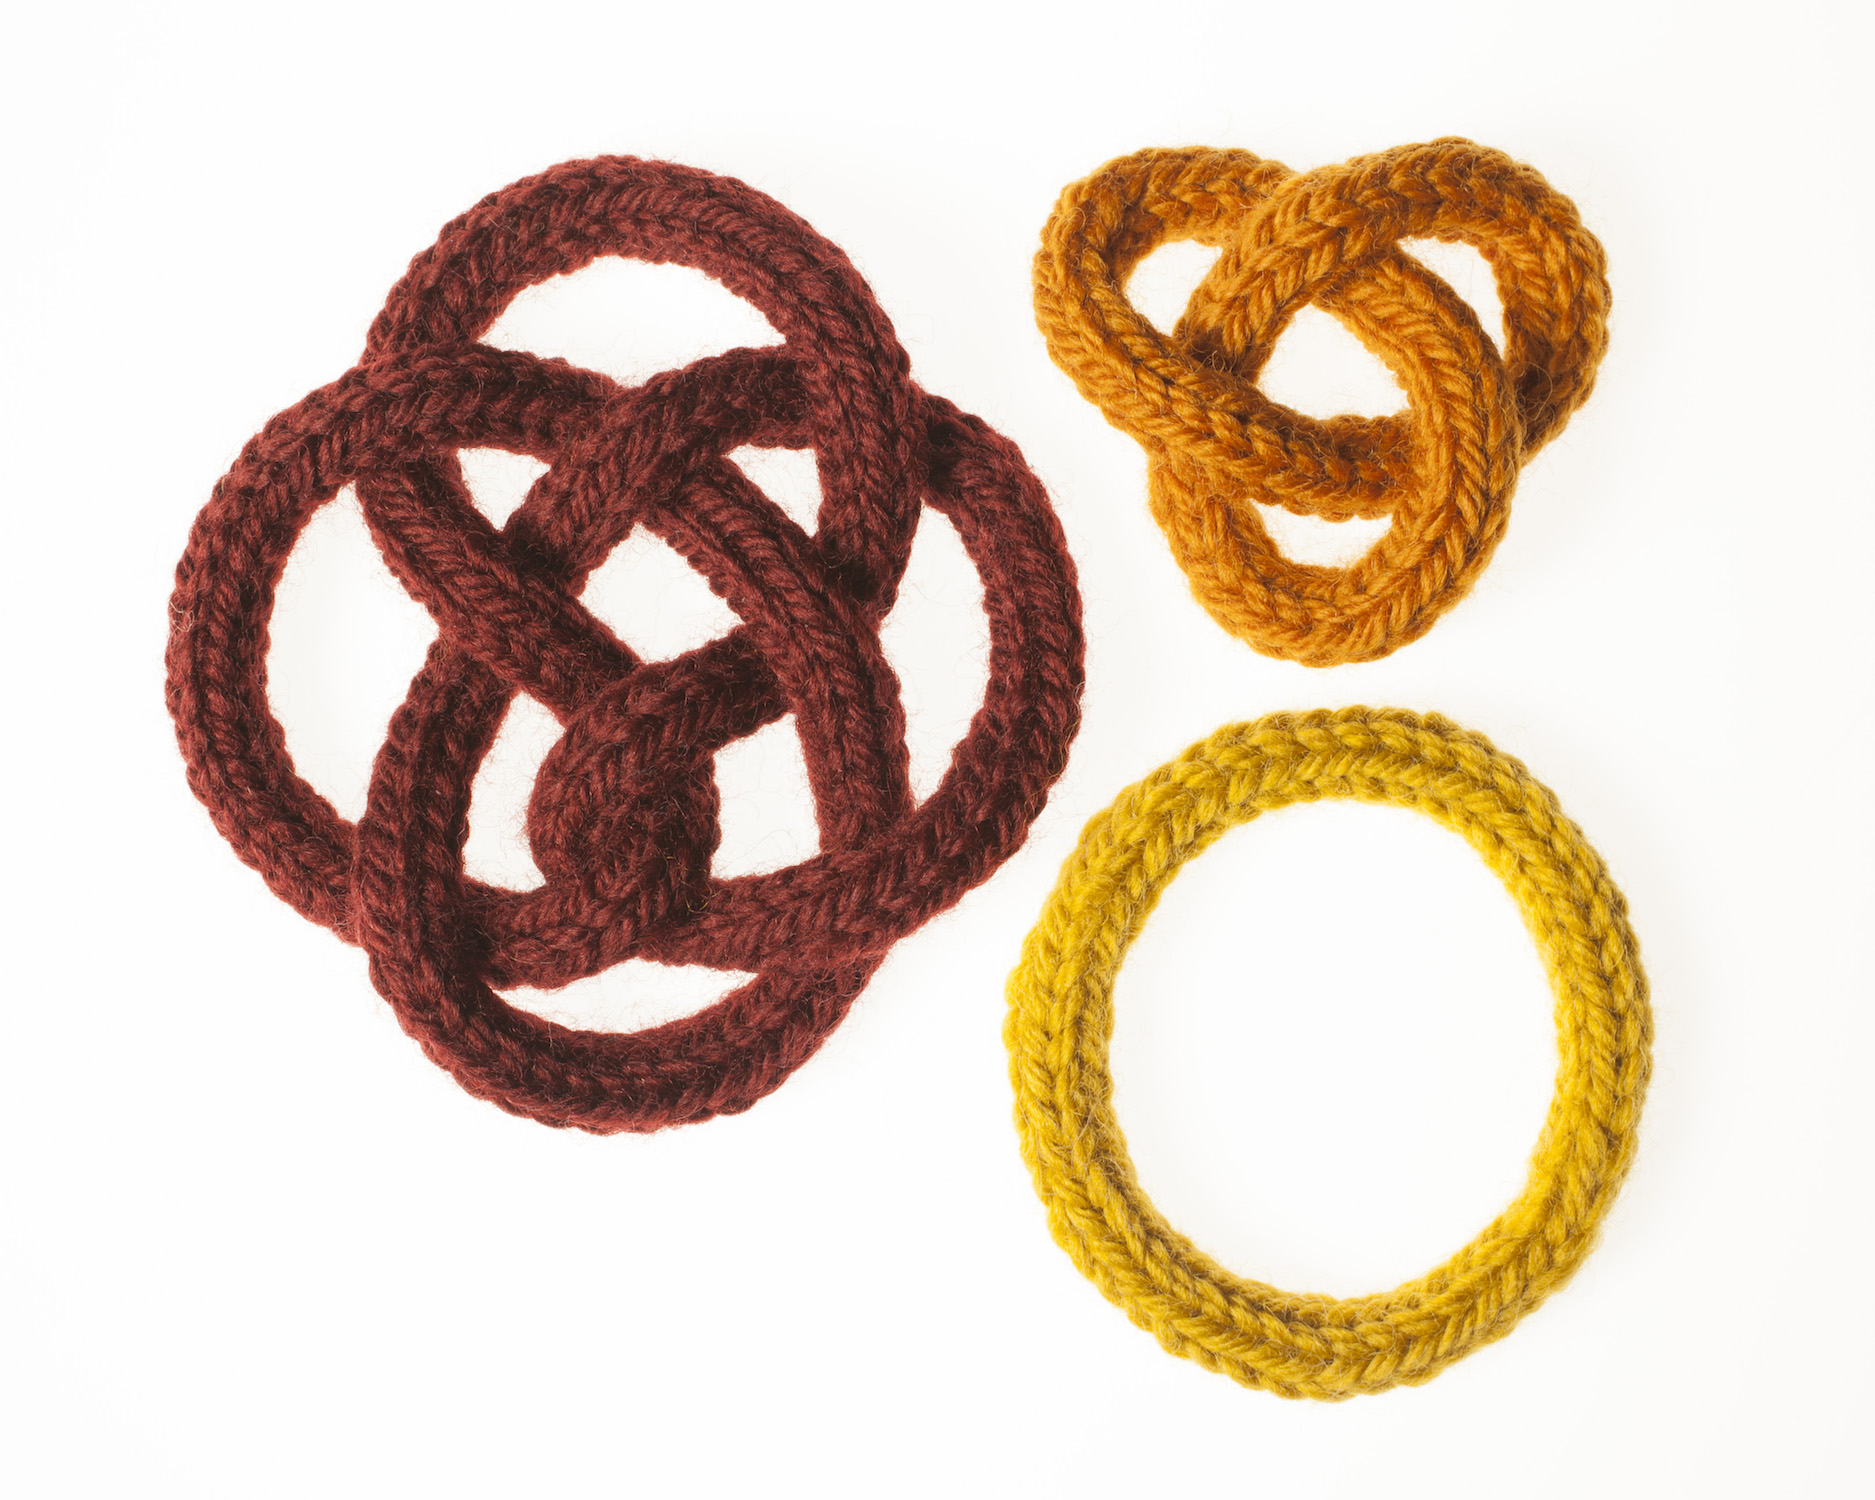 French-knitted knots